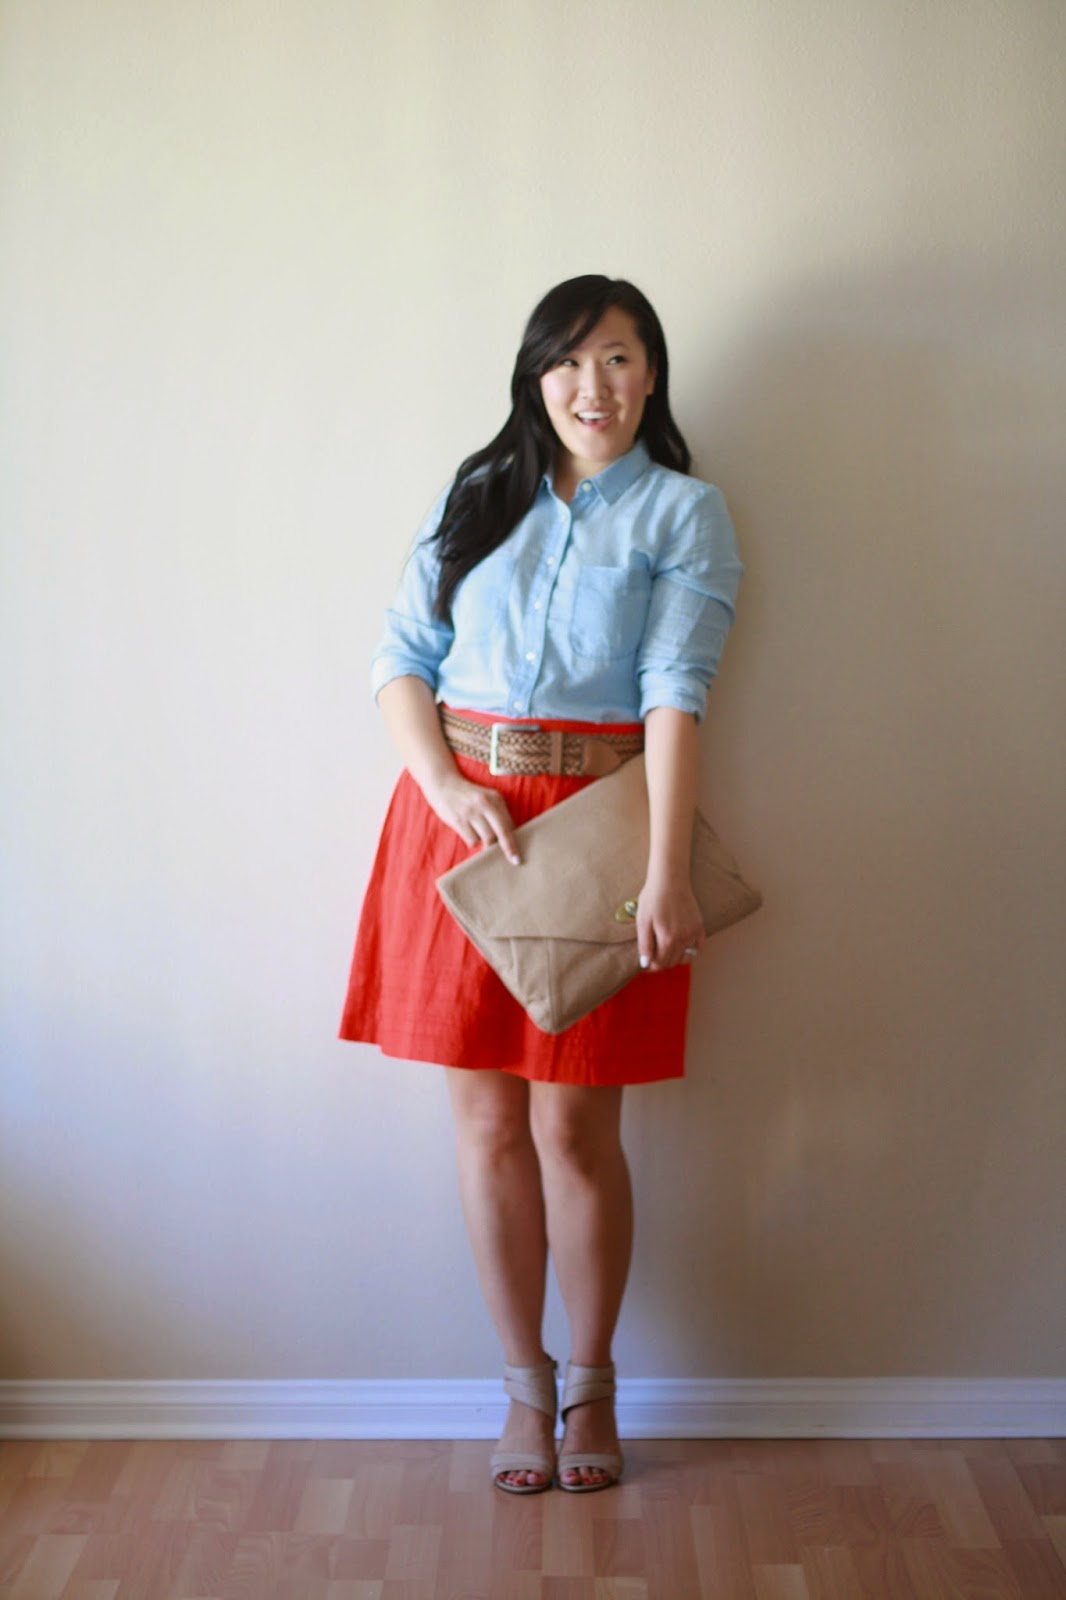 fashion blogger, style blogger, ootd, loft, nine west, urban outfitters, forever 21, red skirt, nude pumps, nude heels